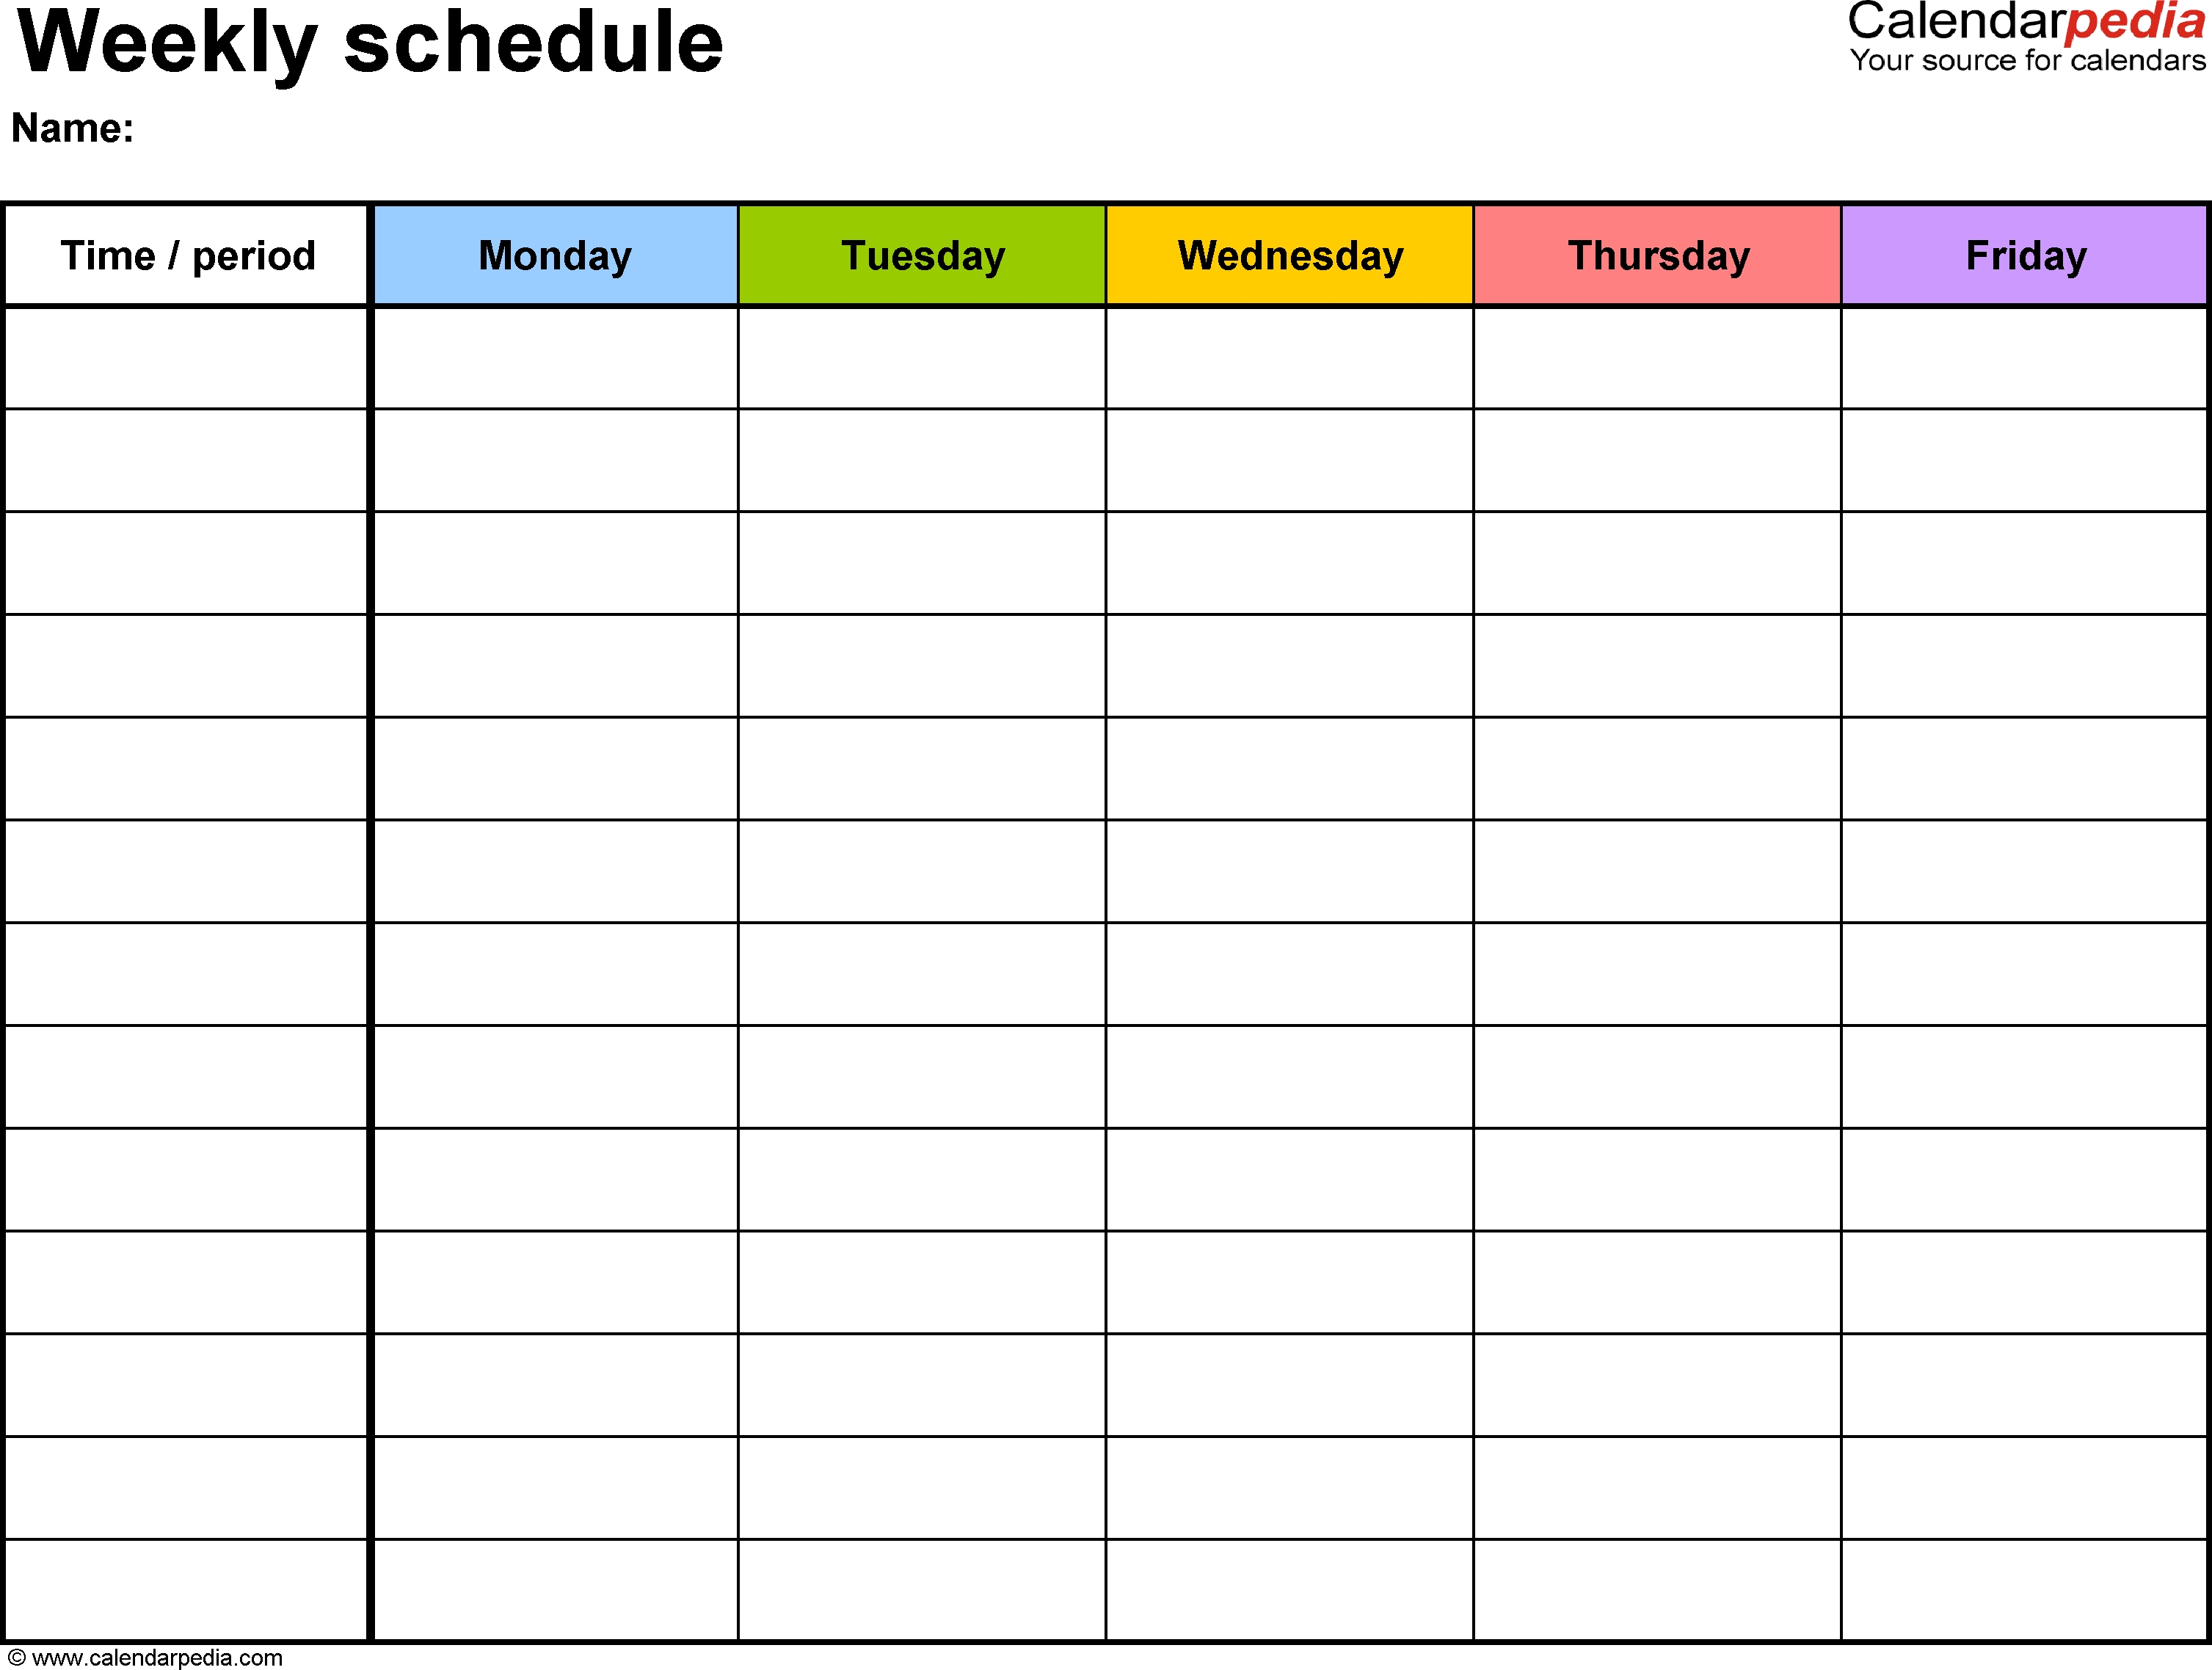 Free Weekly Schedule Templates For Excel - 18 Templates intended for Free Printable Weekly Calendar Page With Notes Sections